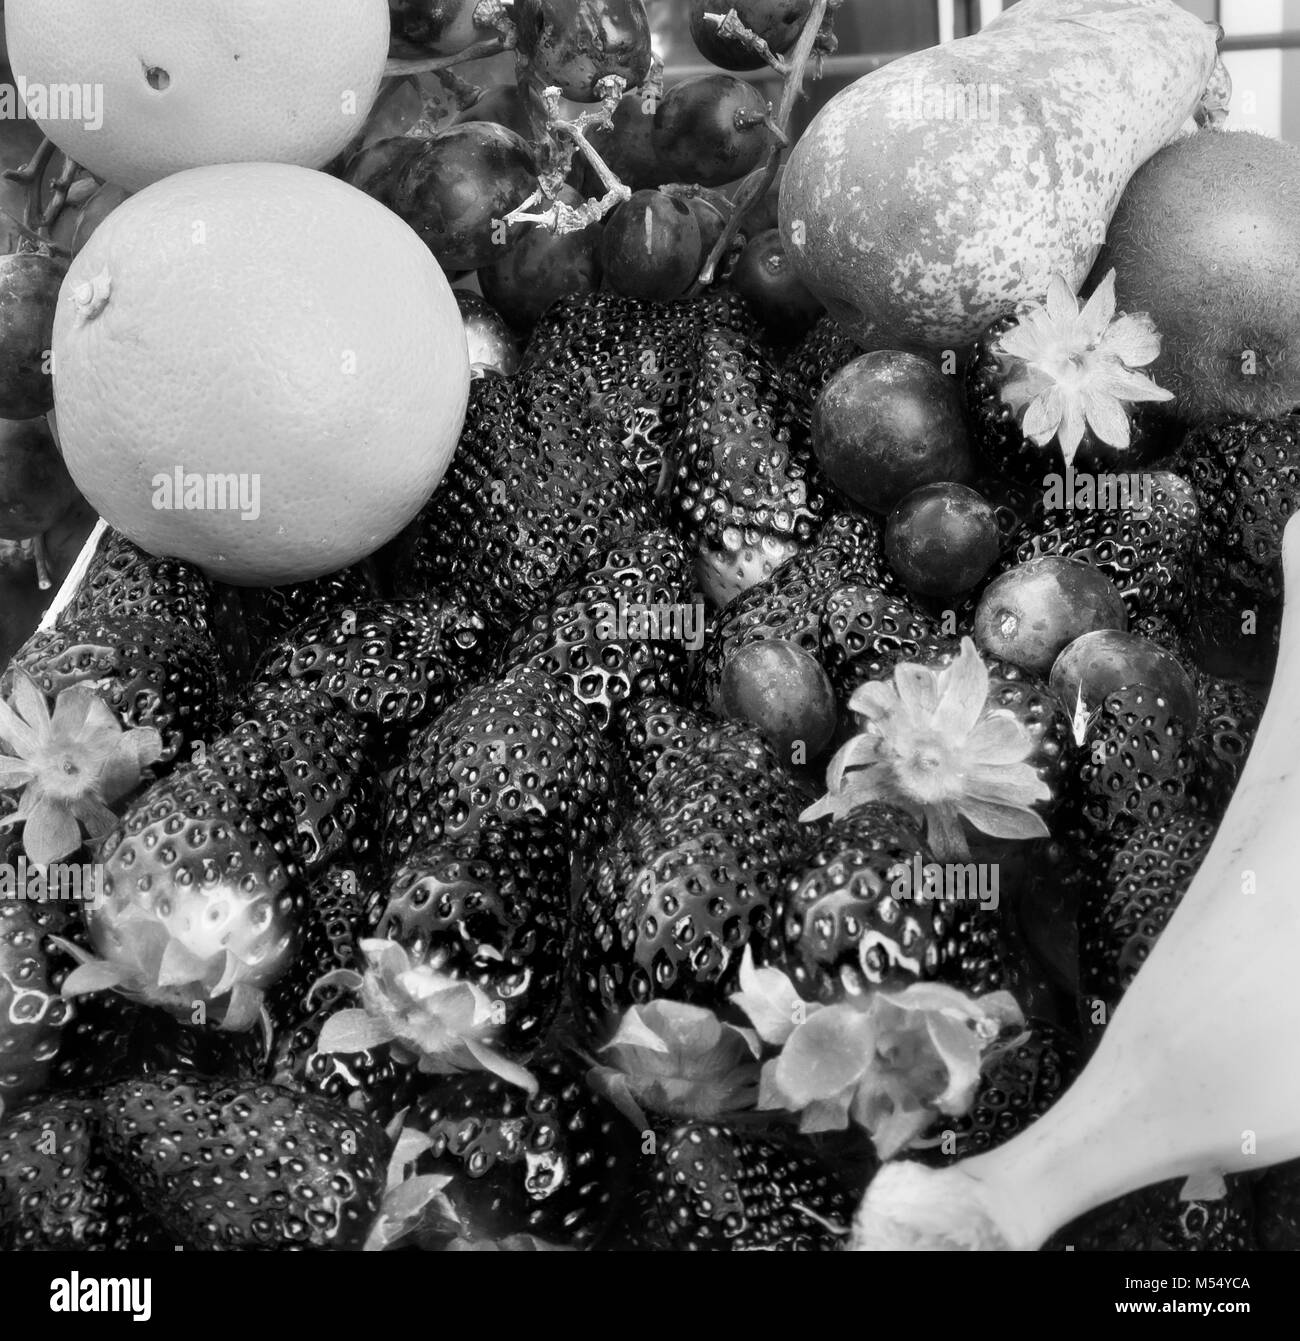 fruit: strawberries oranges grapes kiwi and banana. Black and white photo - Stock Image